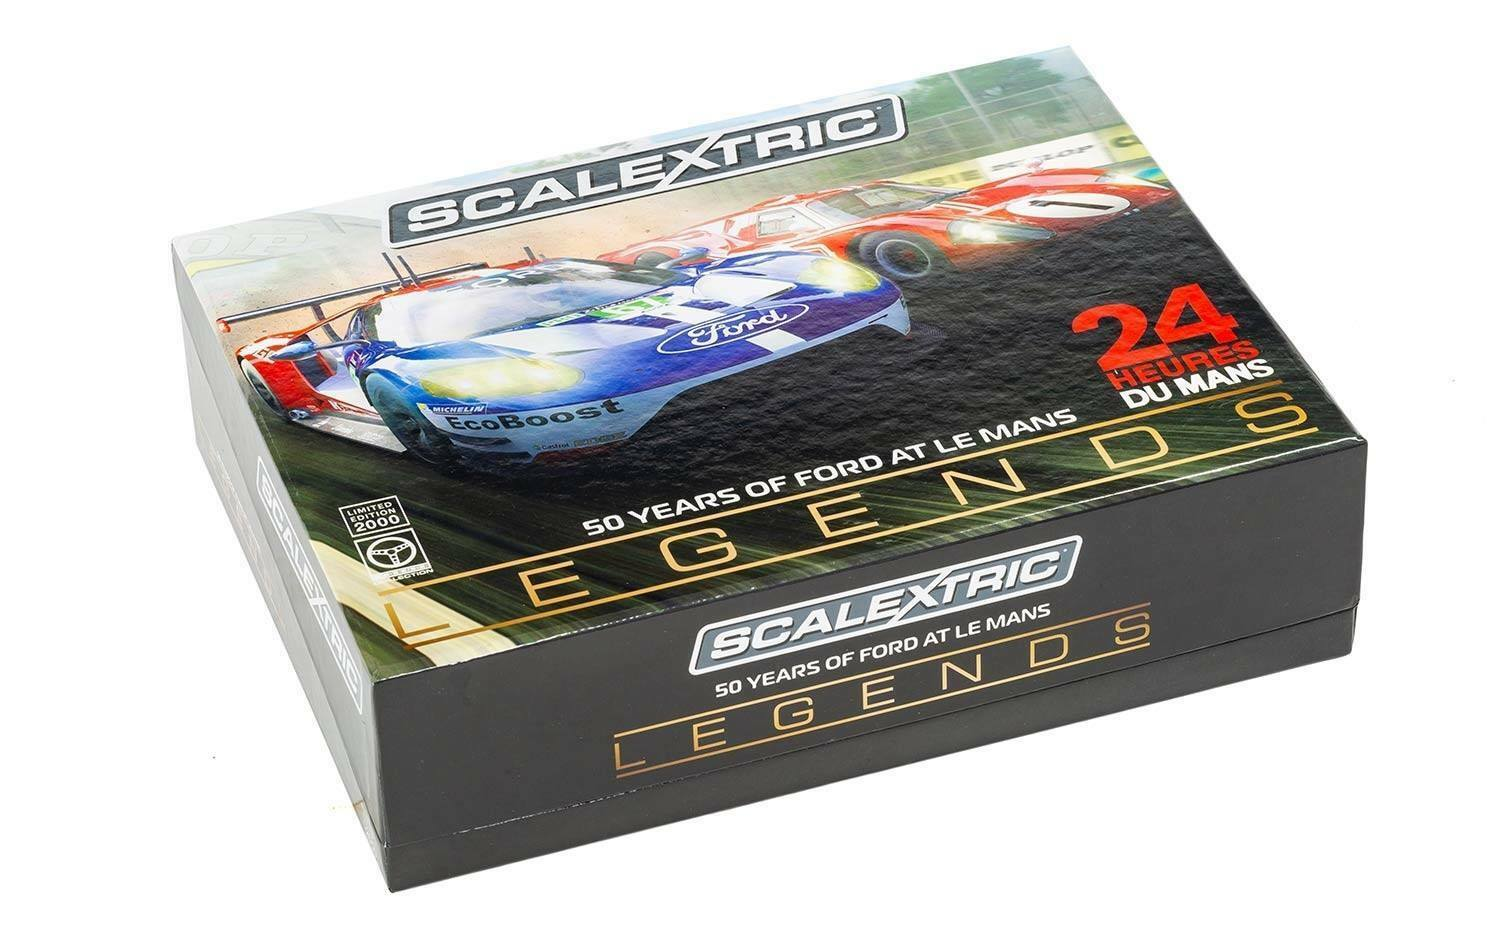 SCALEXTRIC C3893A Slot Car Legends 1967 Le Mans 50 Years of Ford, BRAND NEW